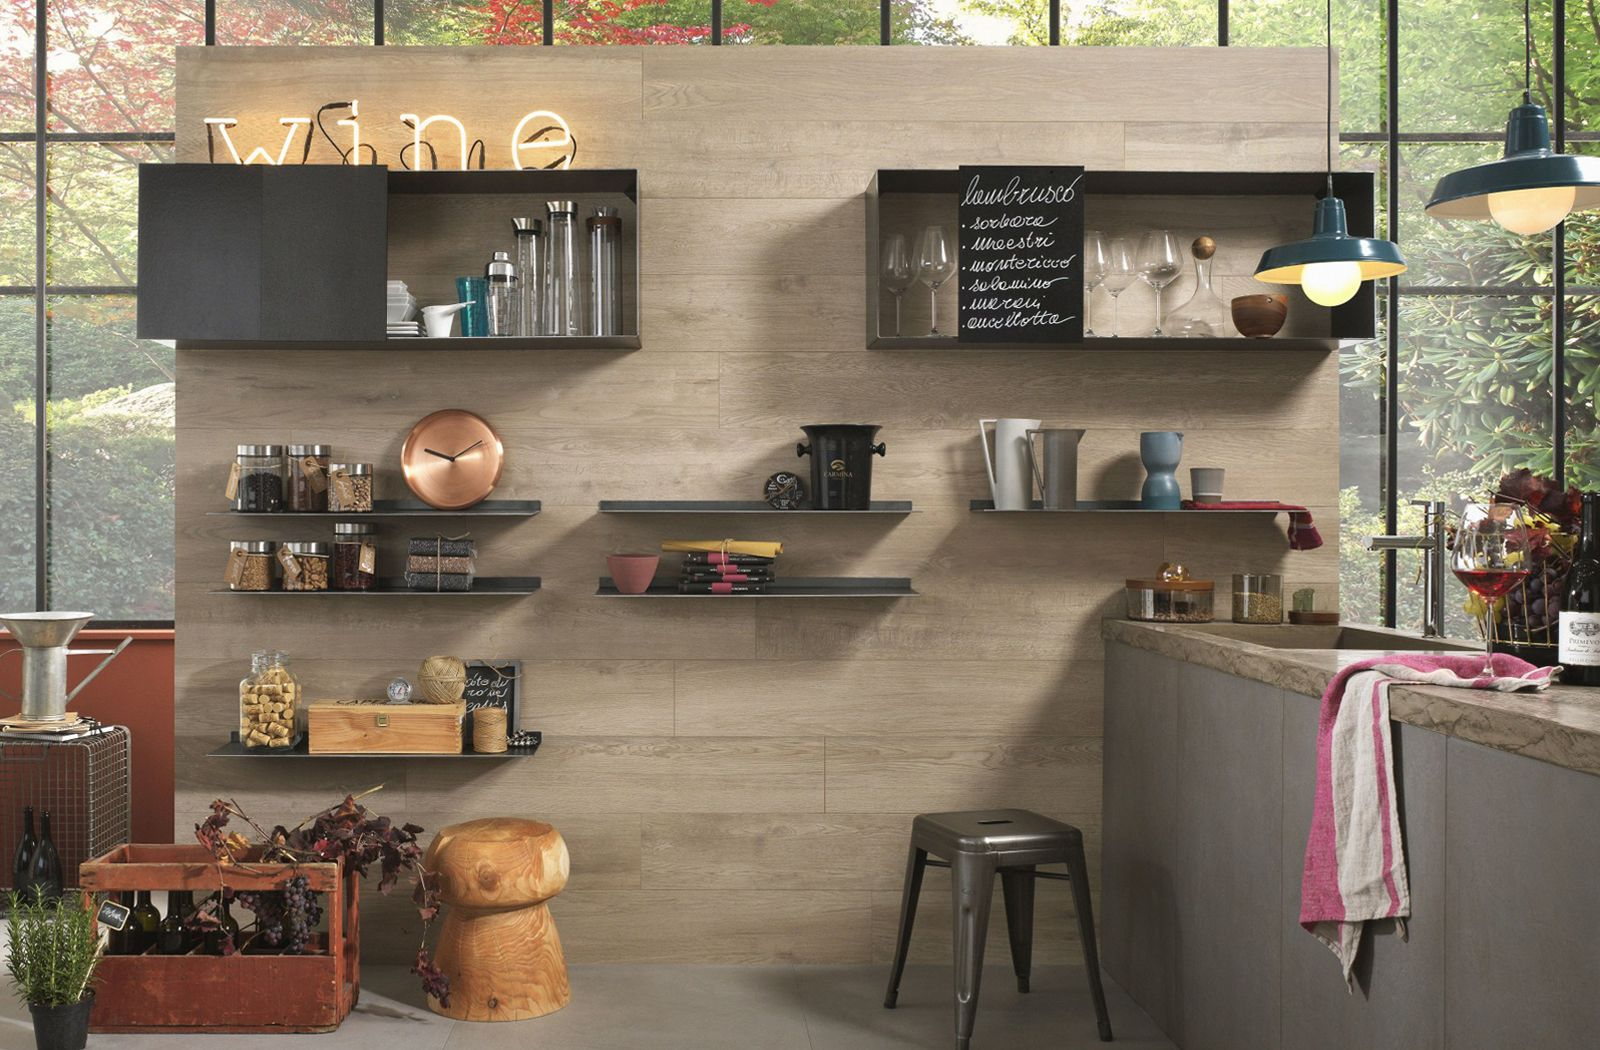 Kitchen Wall Storage Ideawall Tile From My Plank Collection Entrancing Kitchen Wall Storage Review